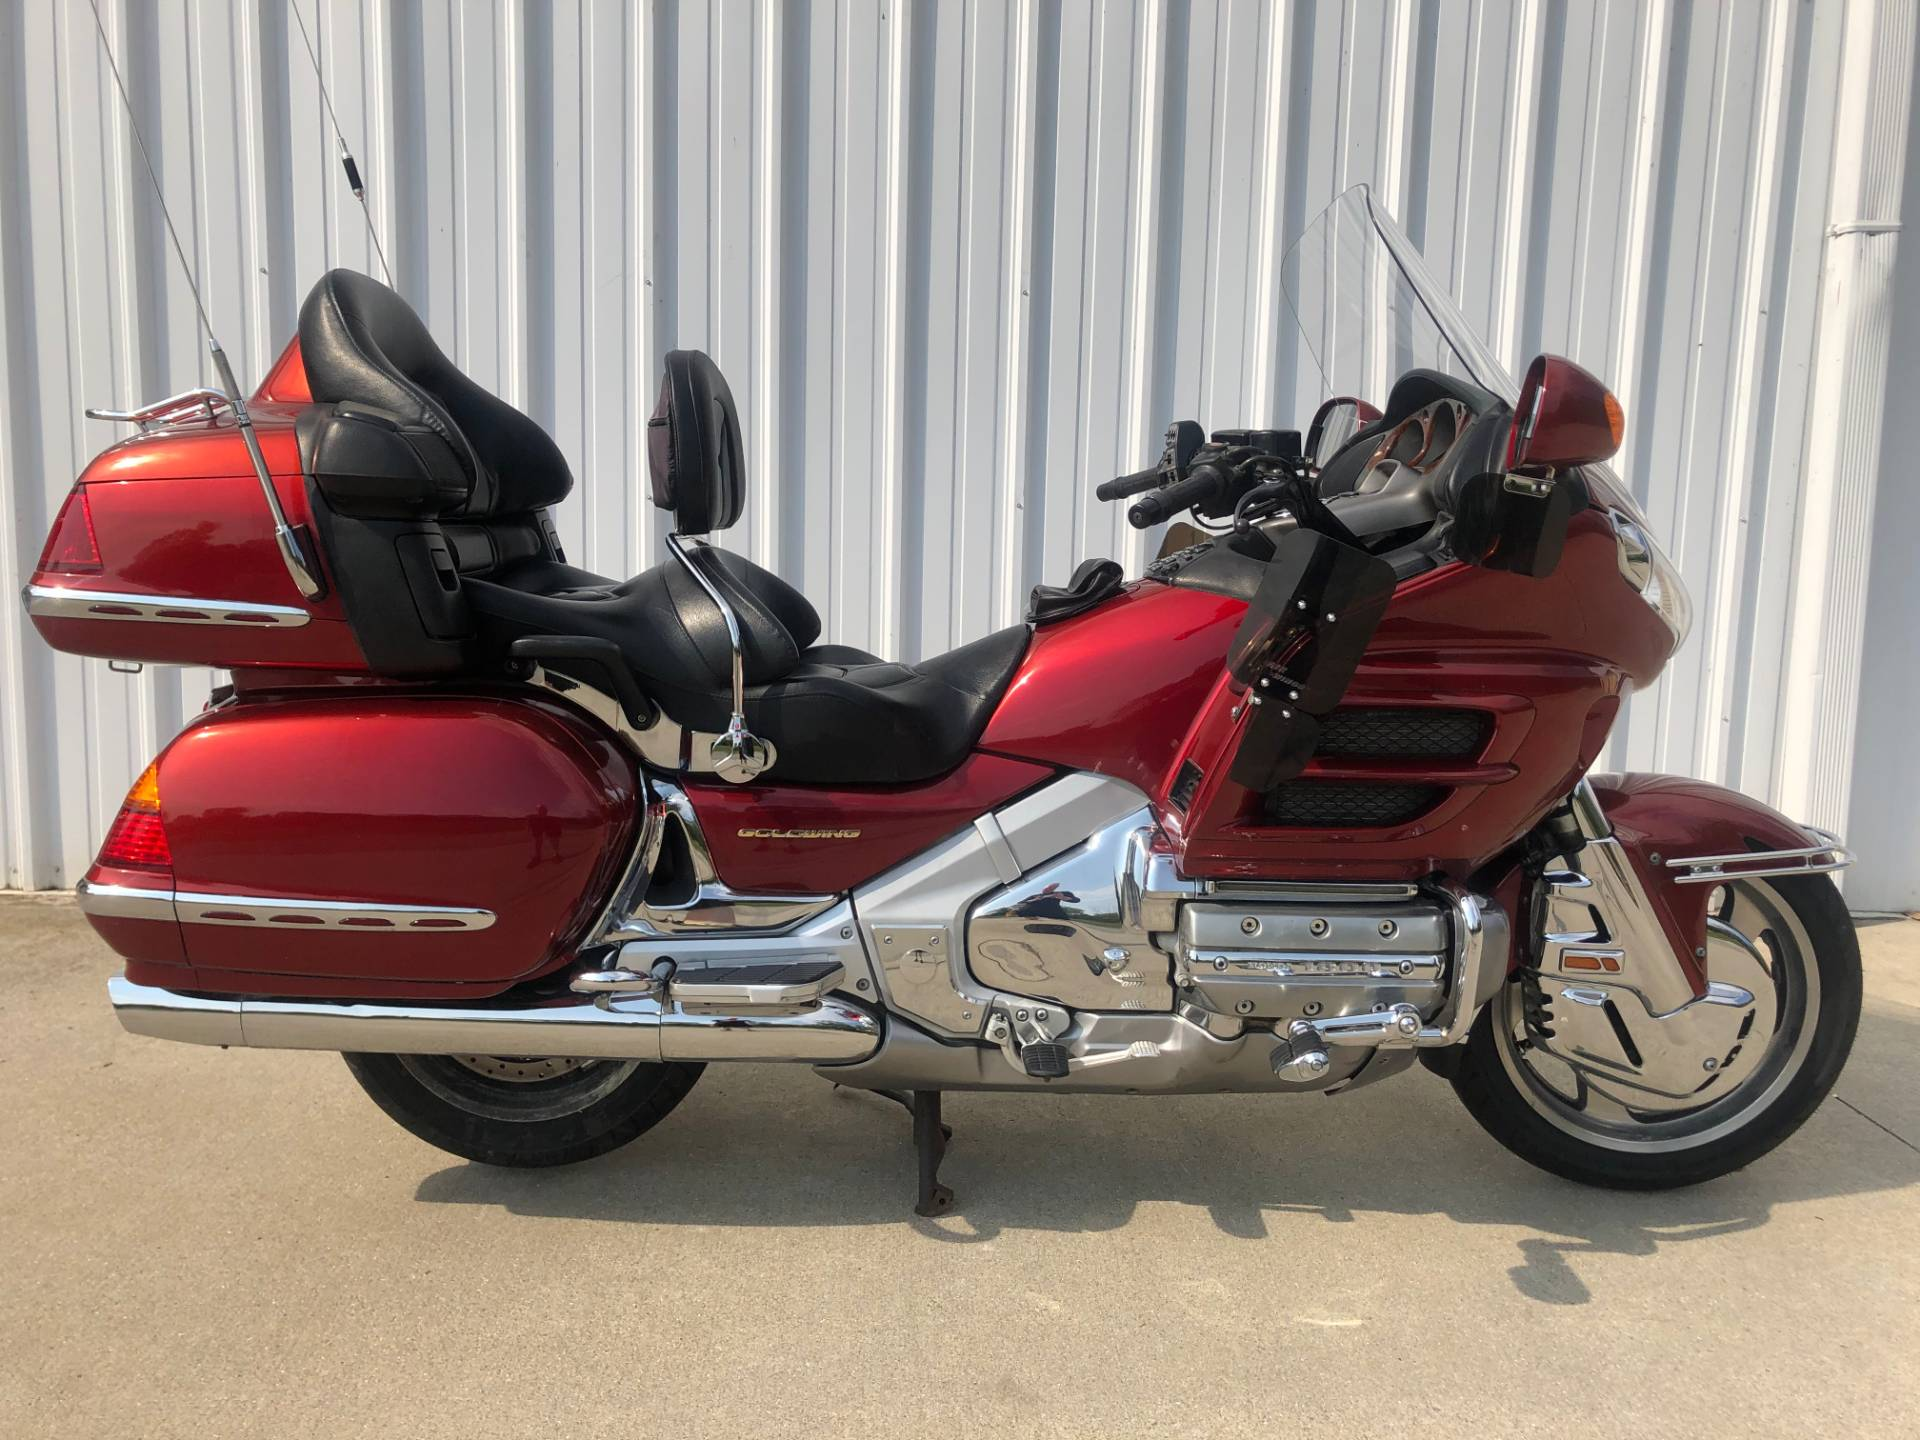 2001 Honda Gold Wing in Ottawa, Ohio - Photo 2